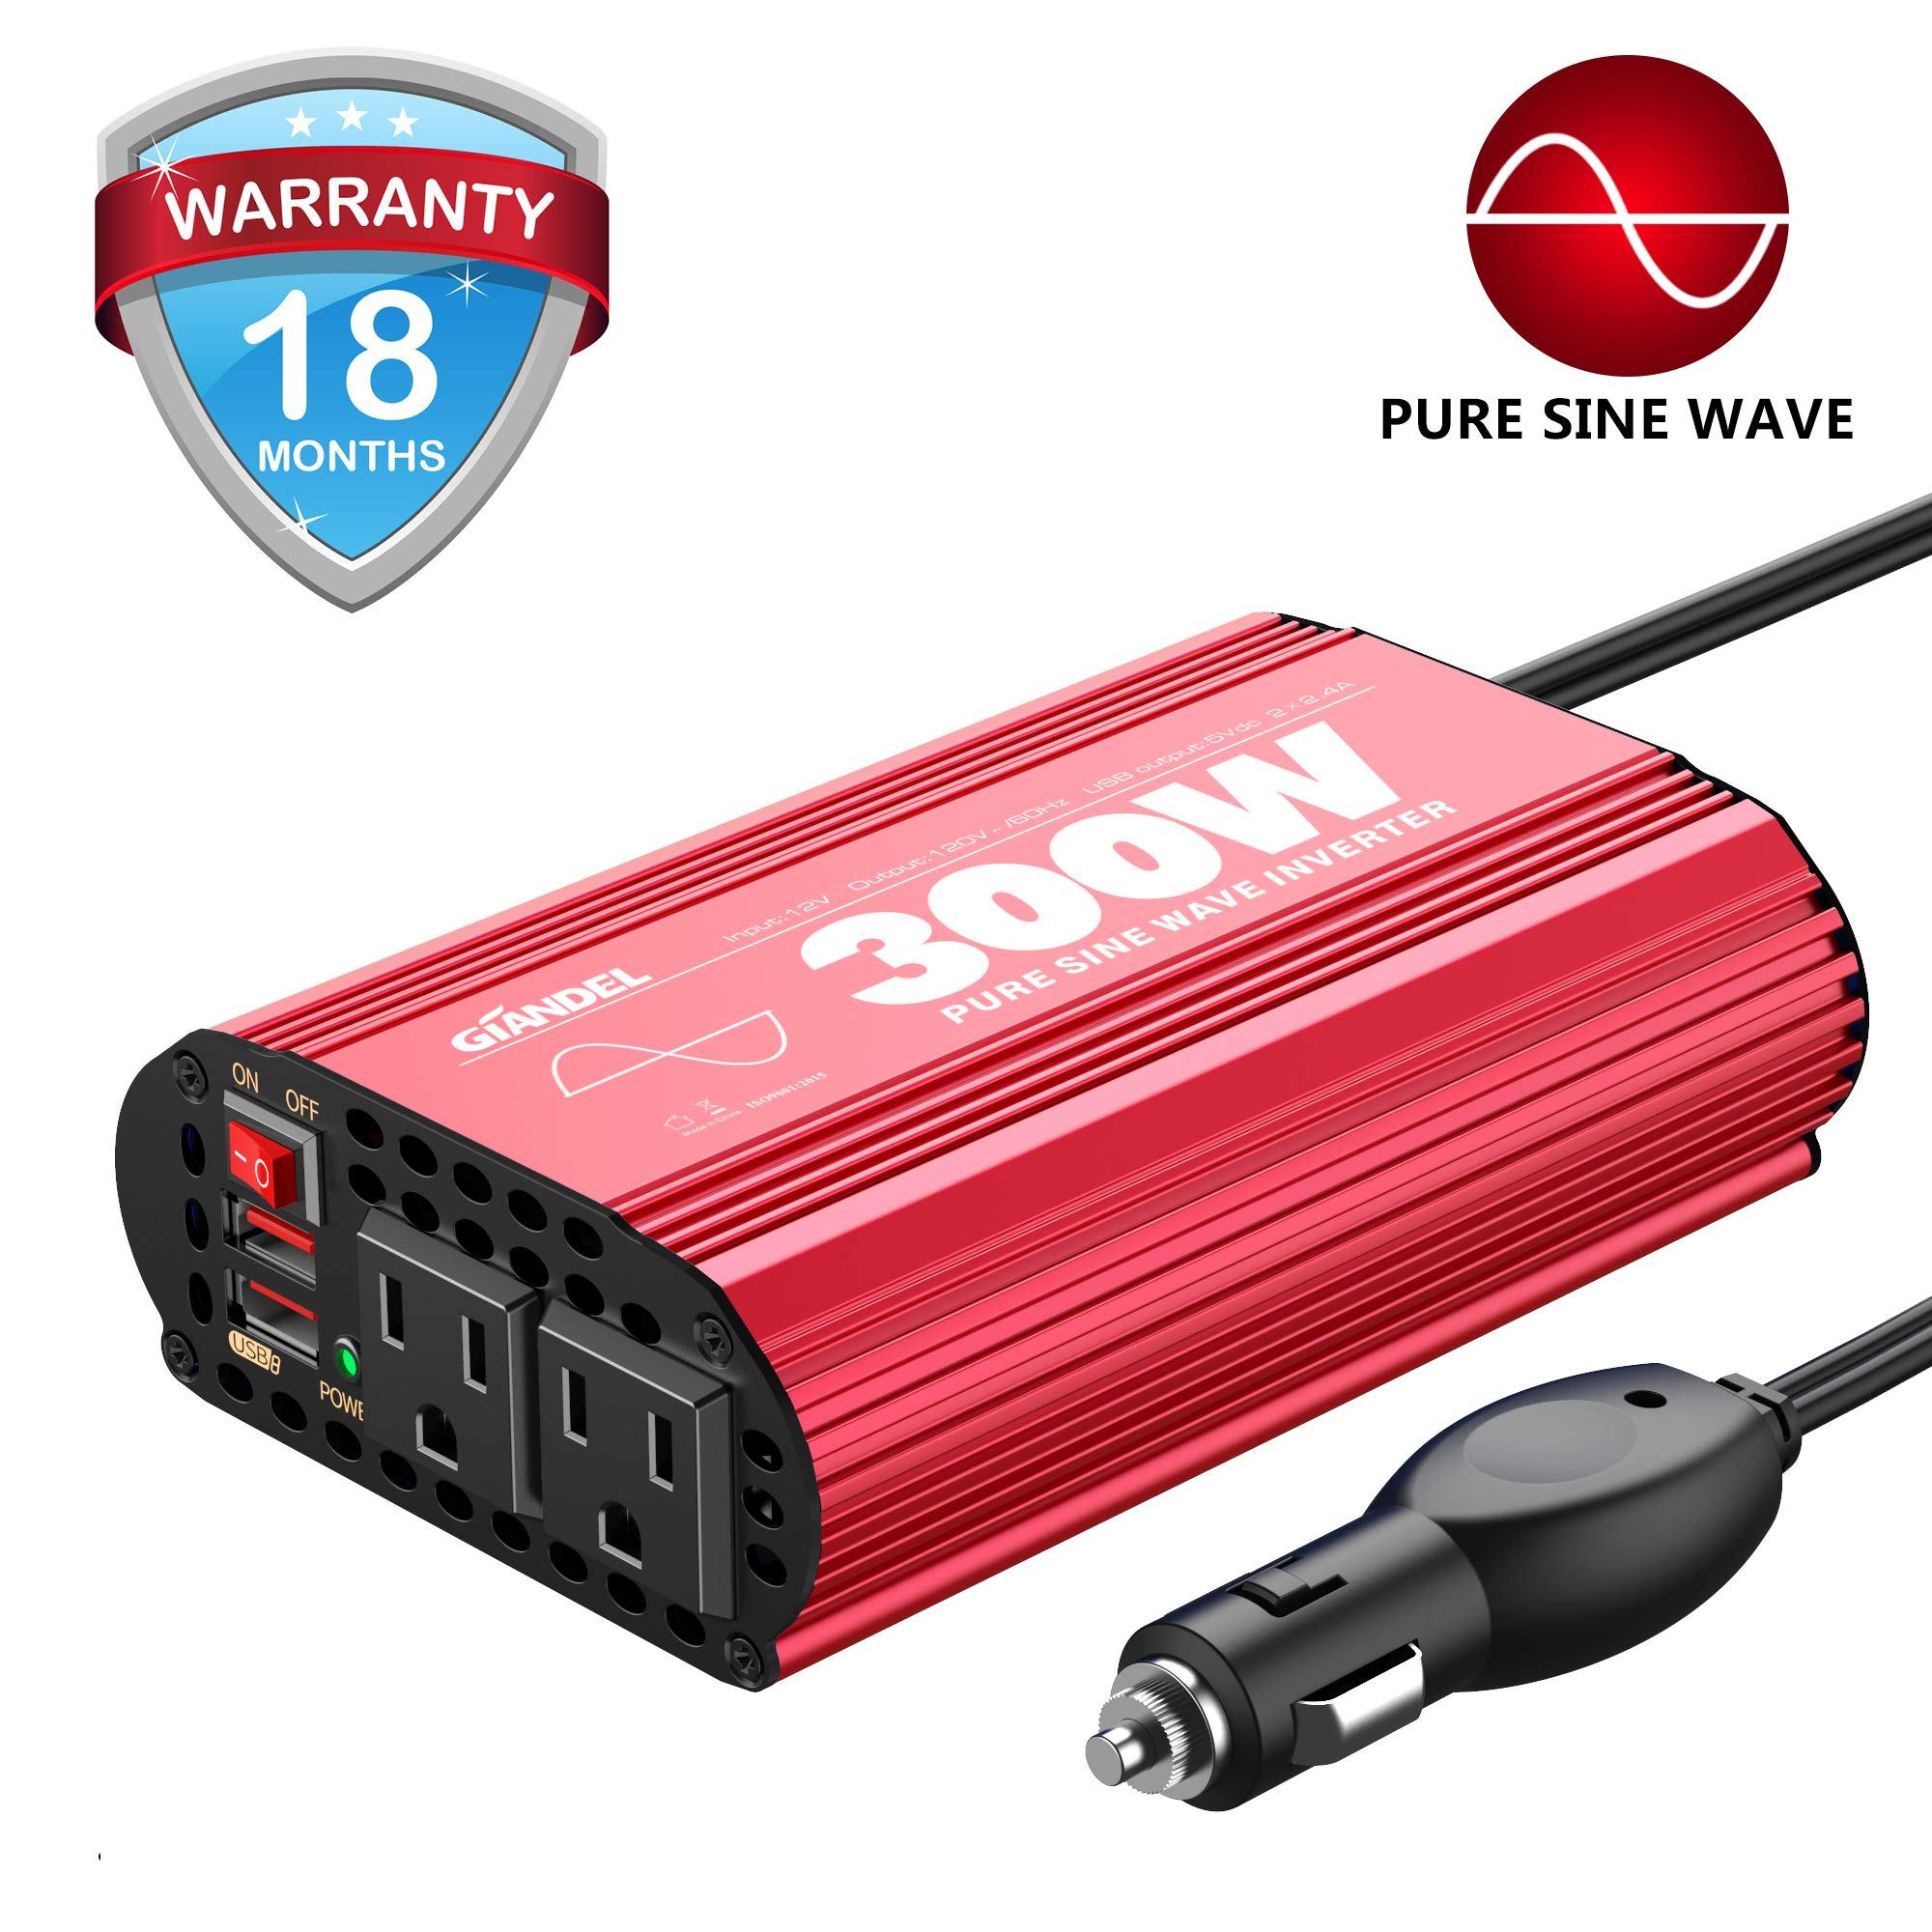 300Watt Pure Sine Wave Power Inverter DV 12volt to AC 120volt Car Converter Adapter with Dual USB Ports for Smartphones Laptops Tablets CPAP by GIANDEL